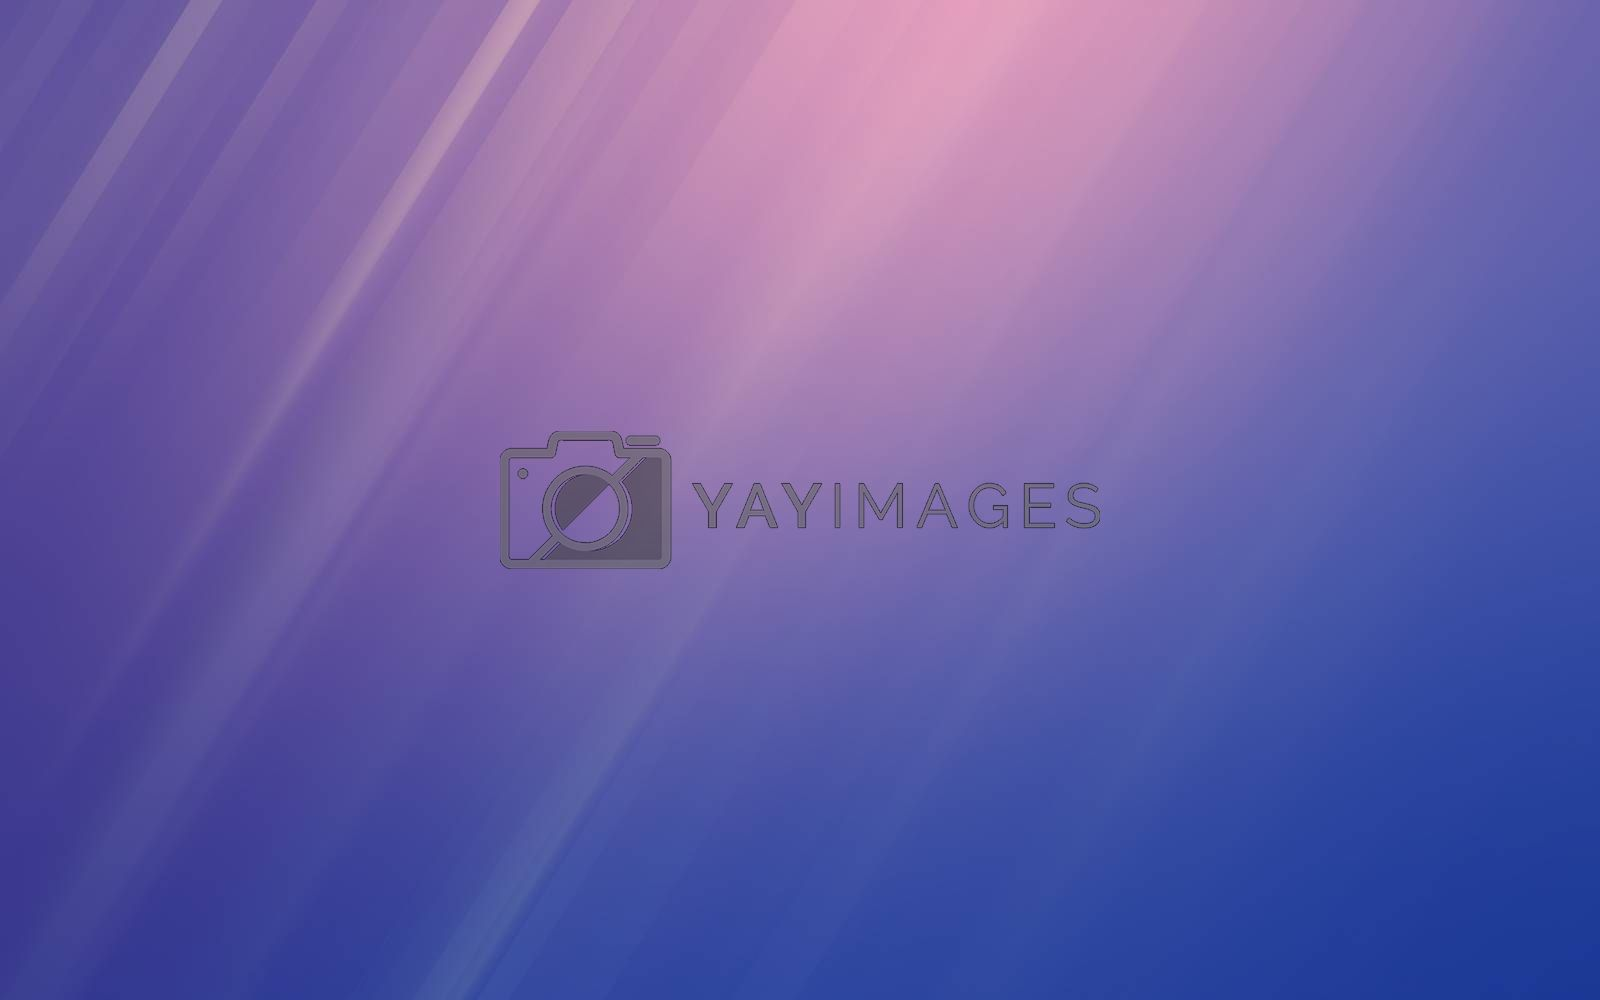 motion blur abstract background by Teerawit Tj-rabbit